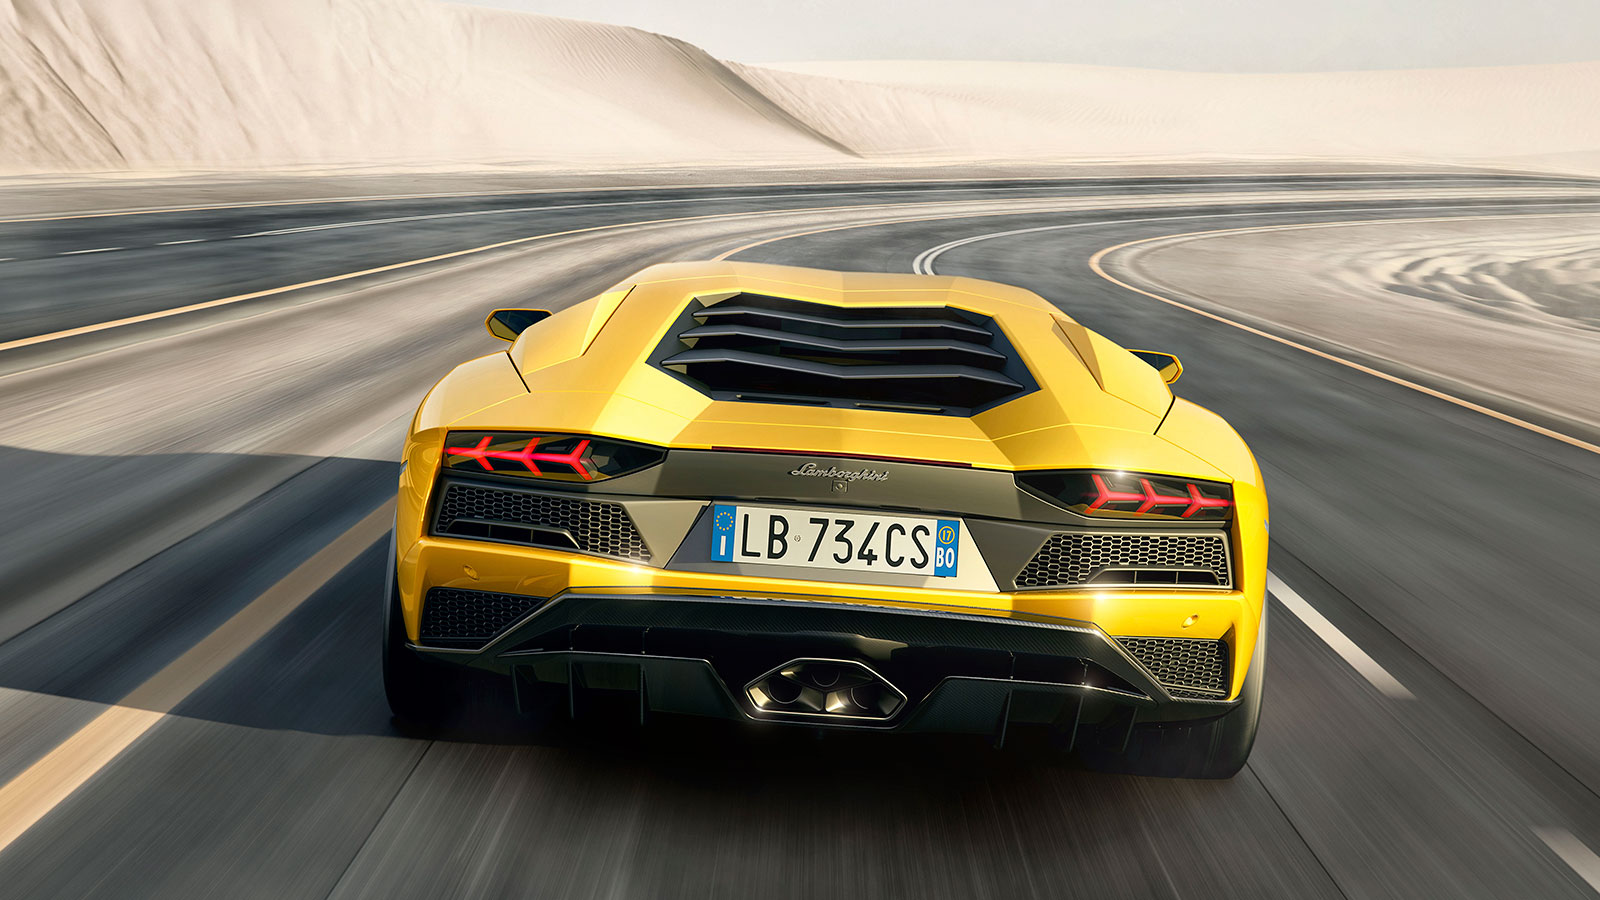 Lamborghini Aventador S Coupe - The Icon Reborn image 39